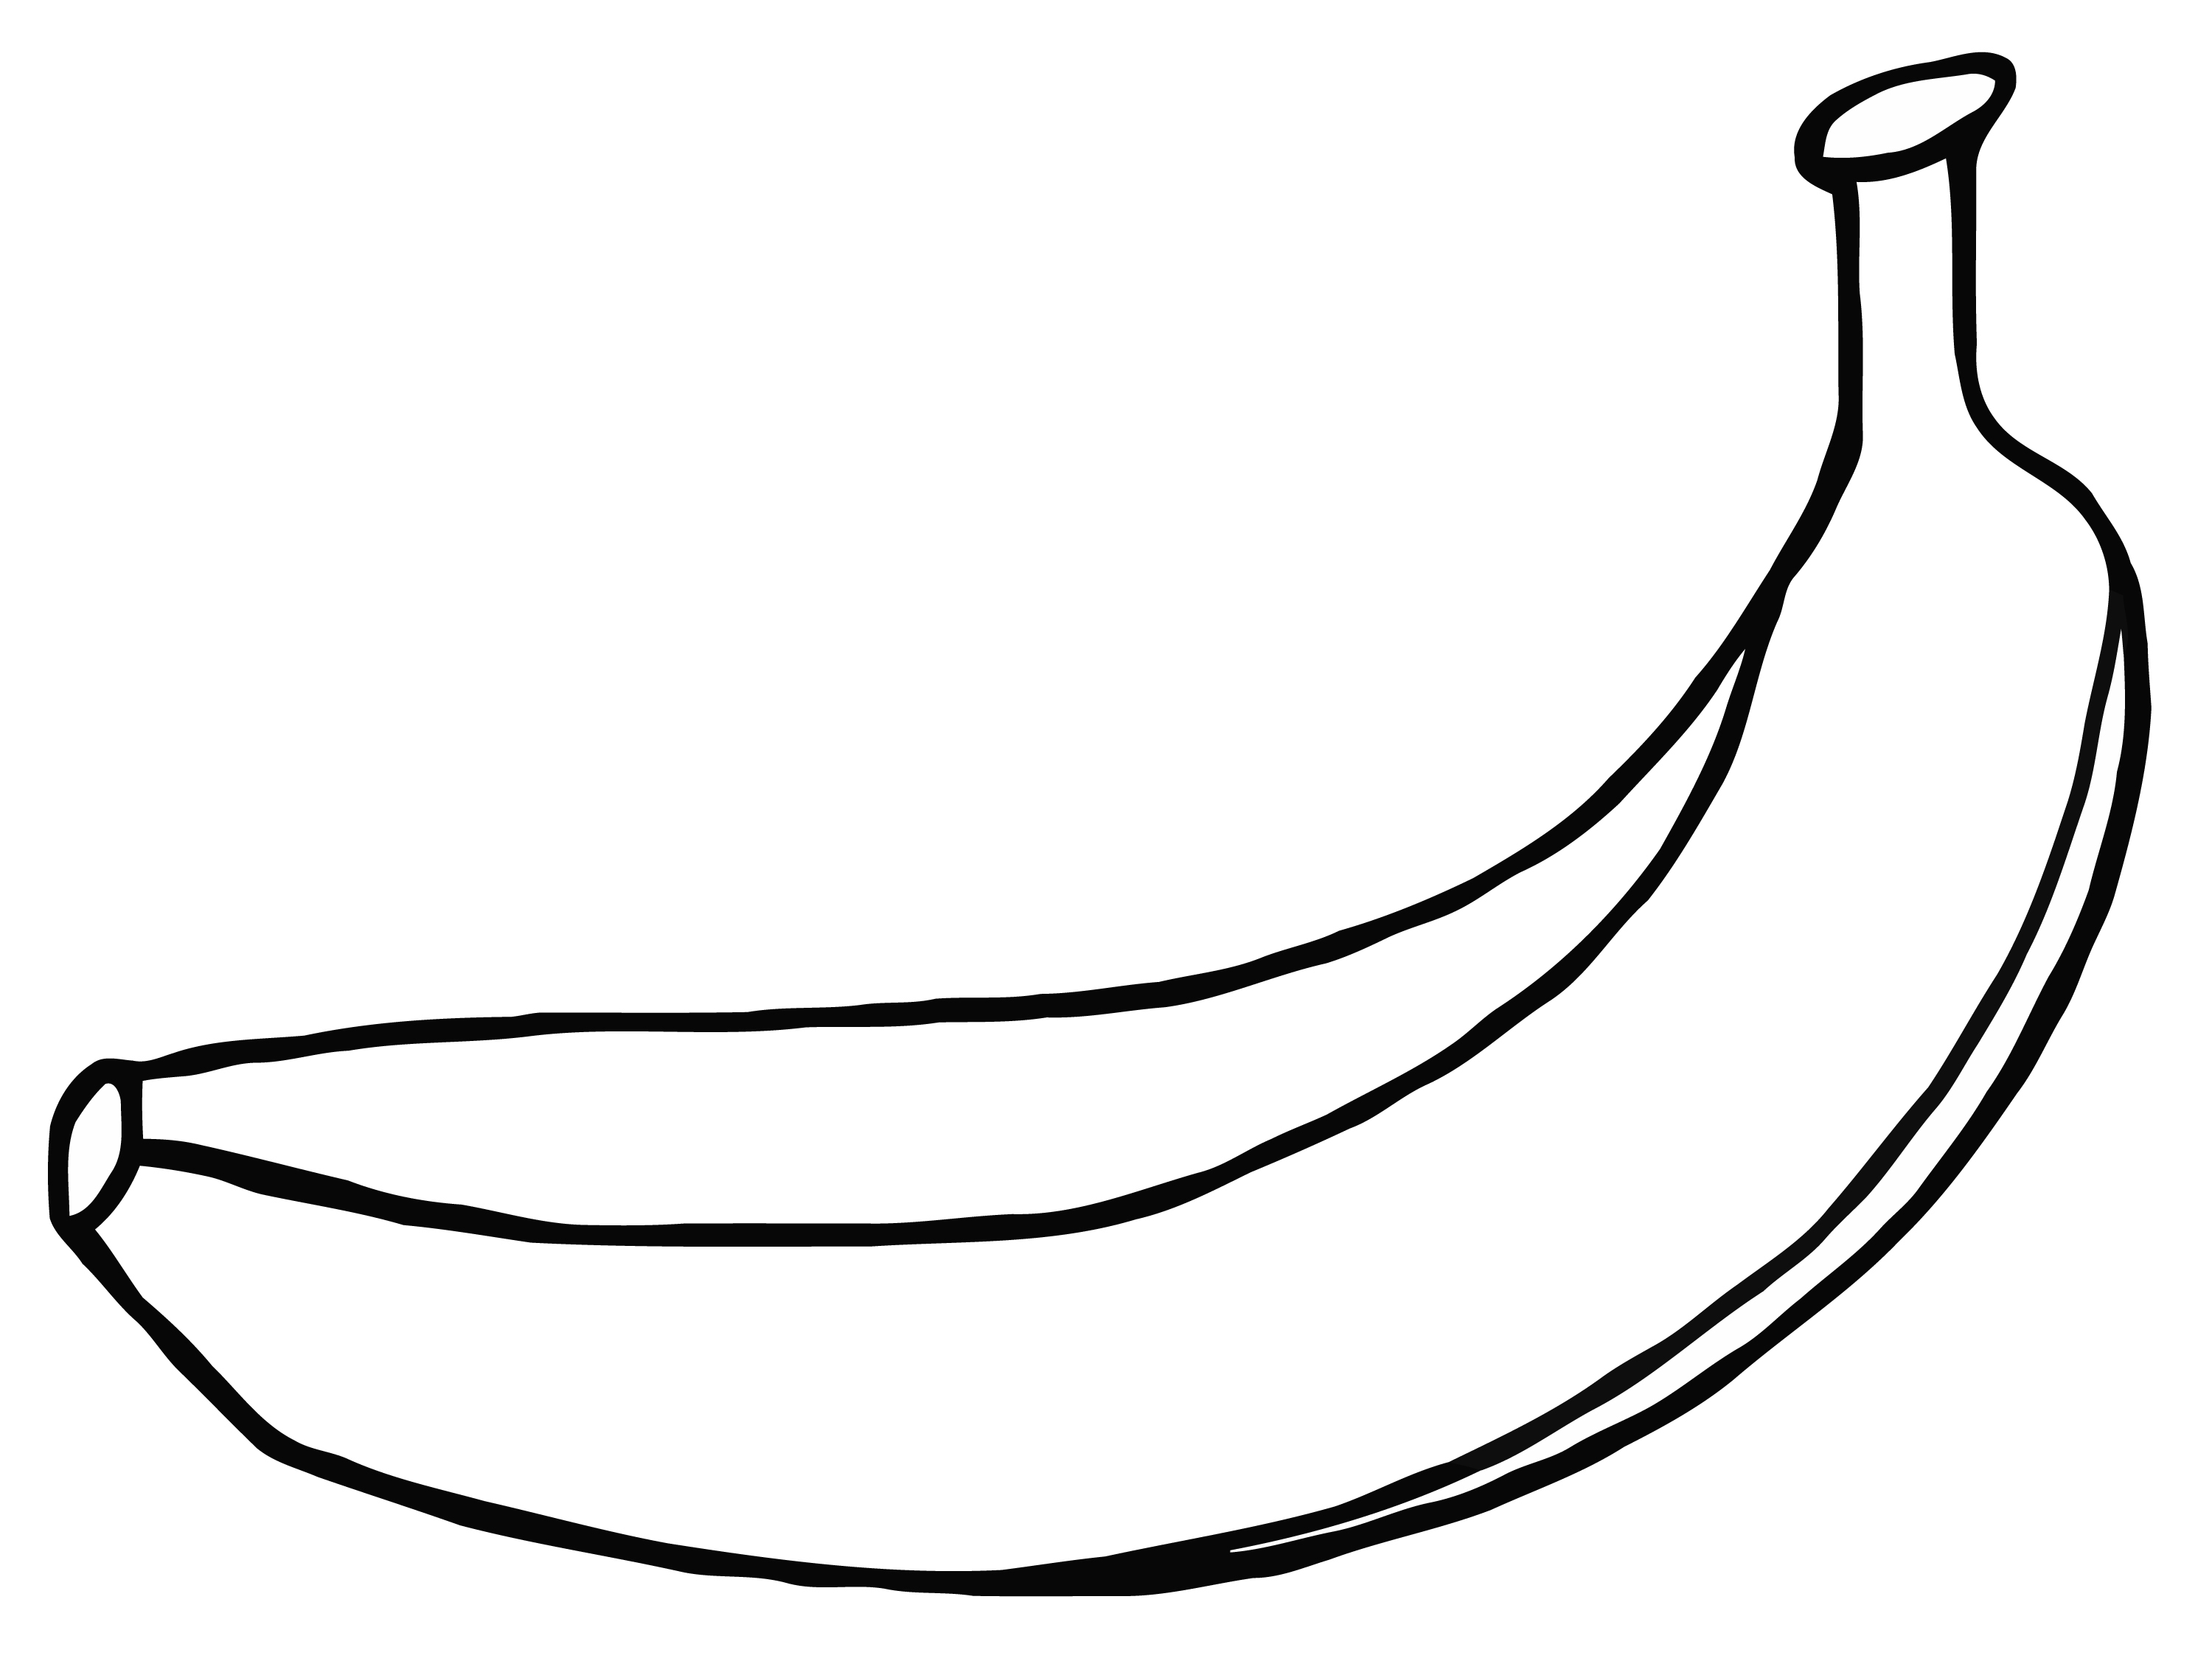 pictures of bananas to print banana printable that are witty carroll39s blog bananas to of print pictures